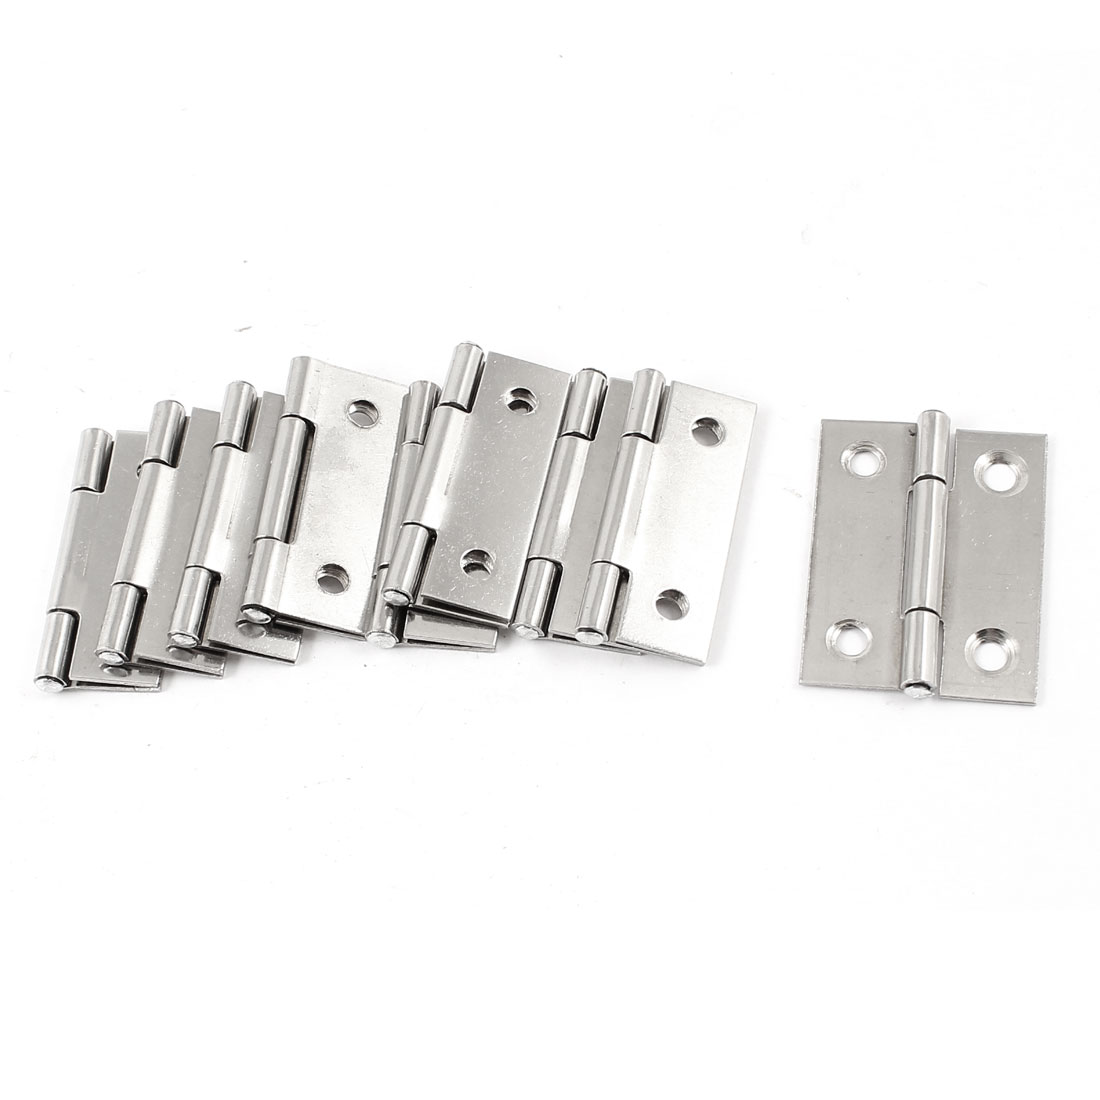 "9 Pcs Stainless Steel 4 Mounting Holes Door Hinges Replacement 1.8"" Length(China (Mainland))"